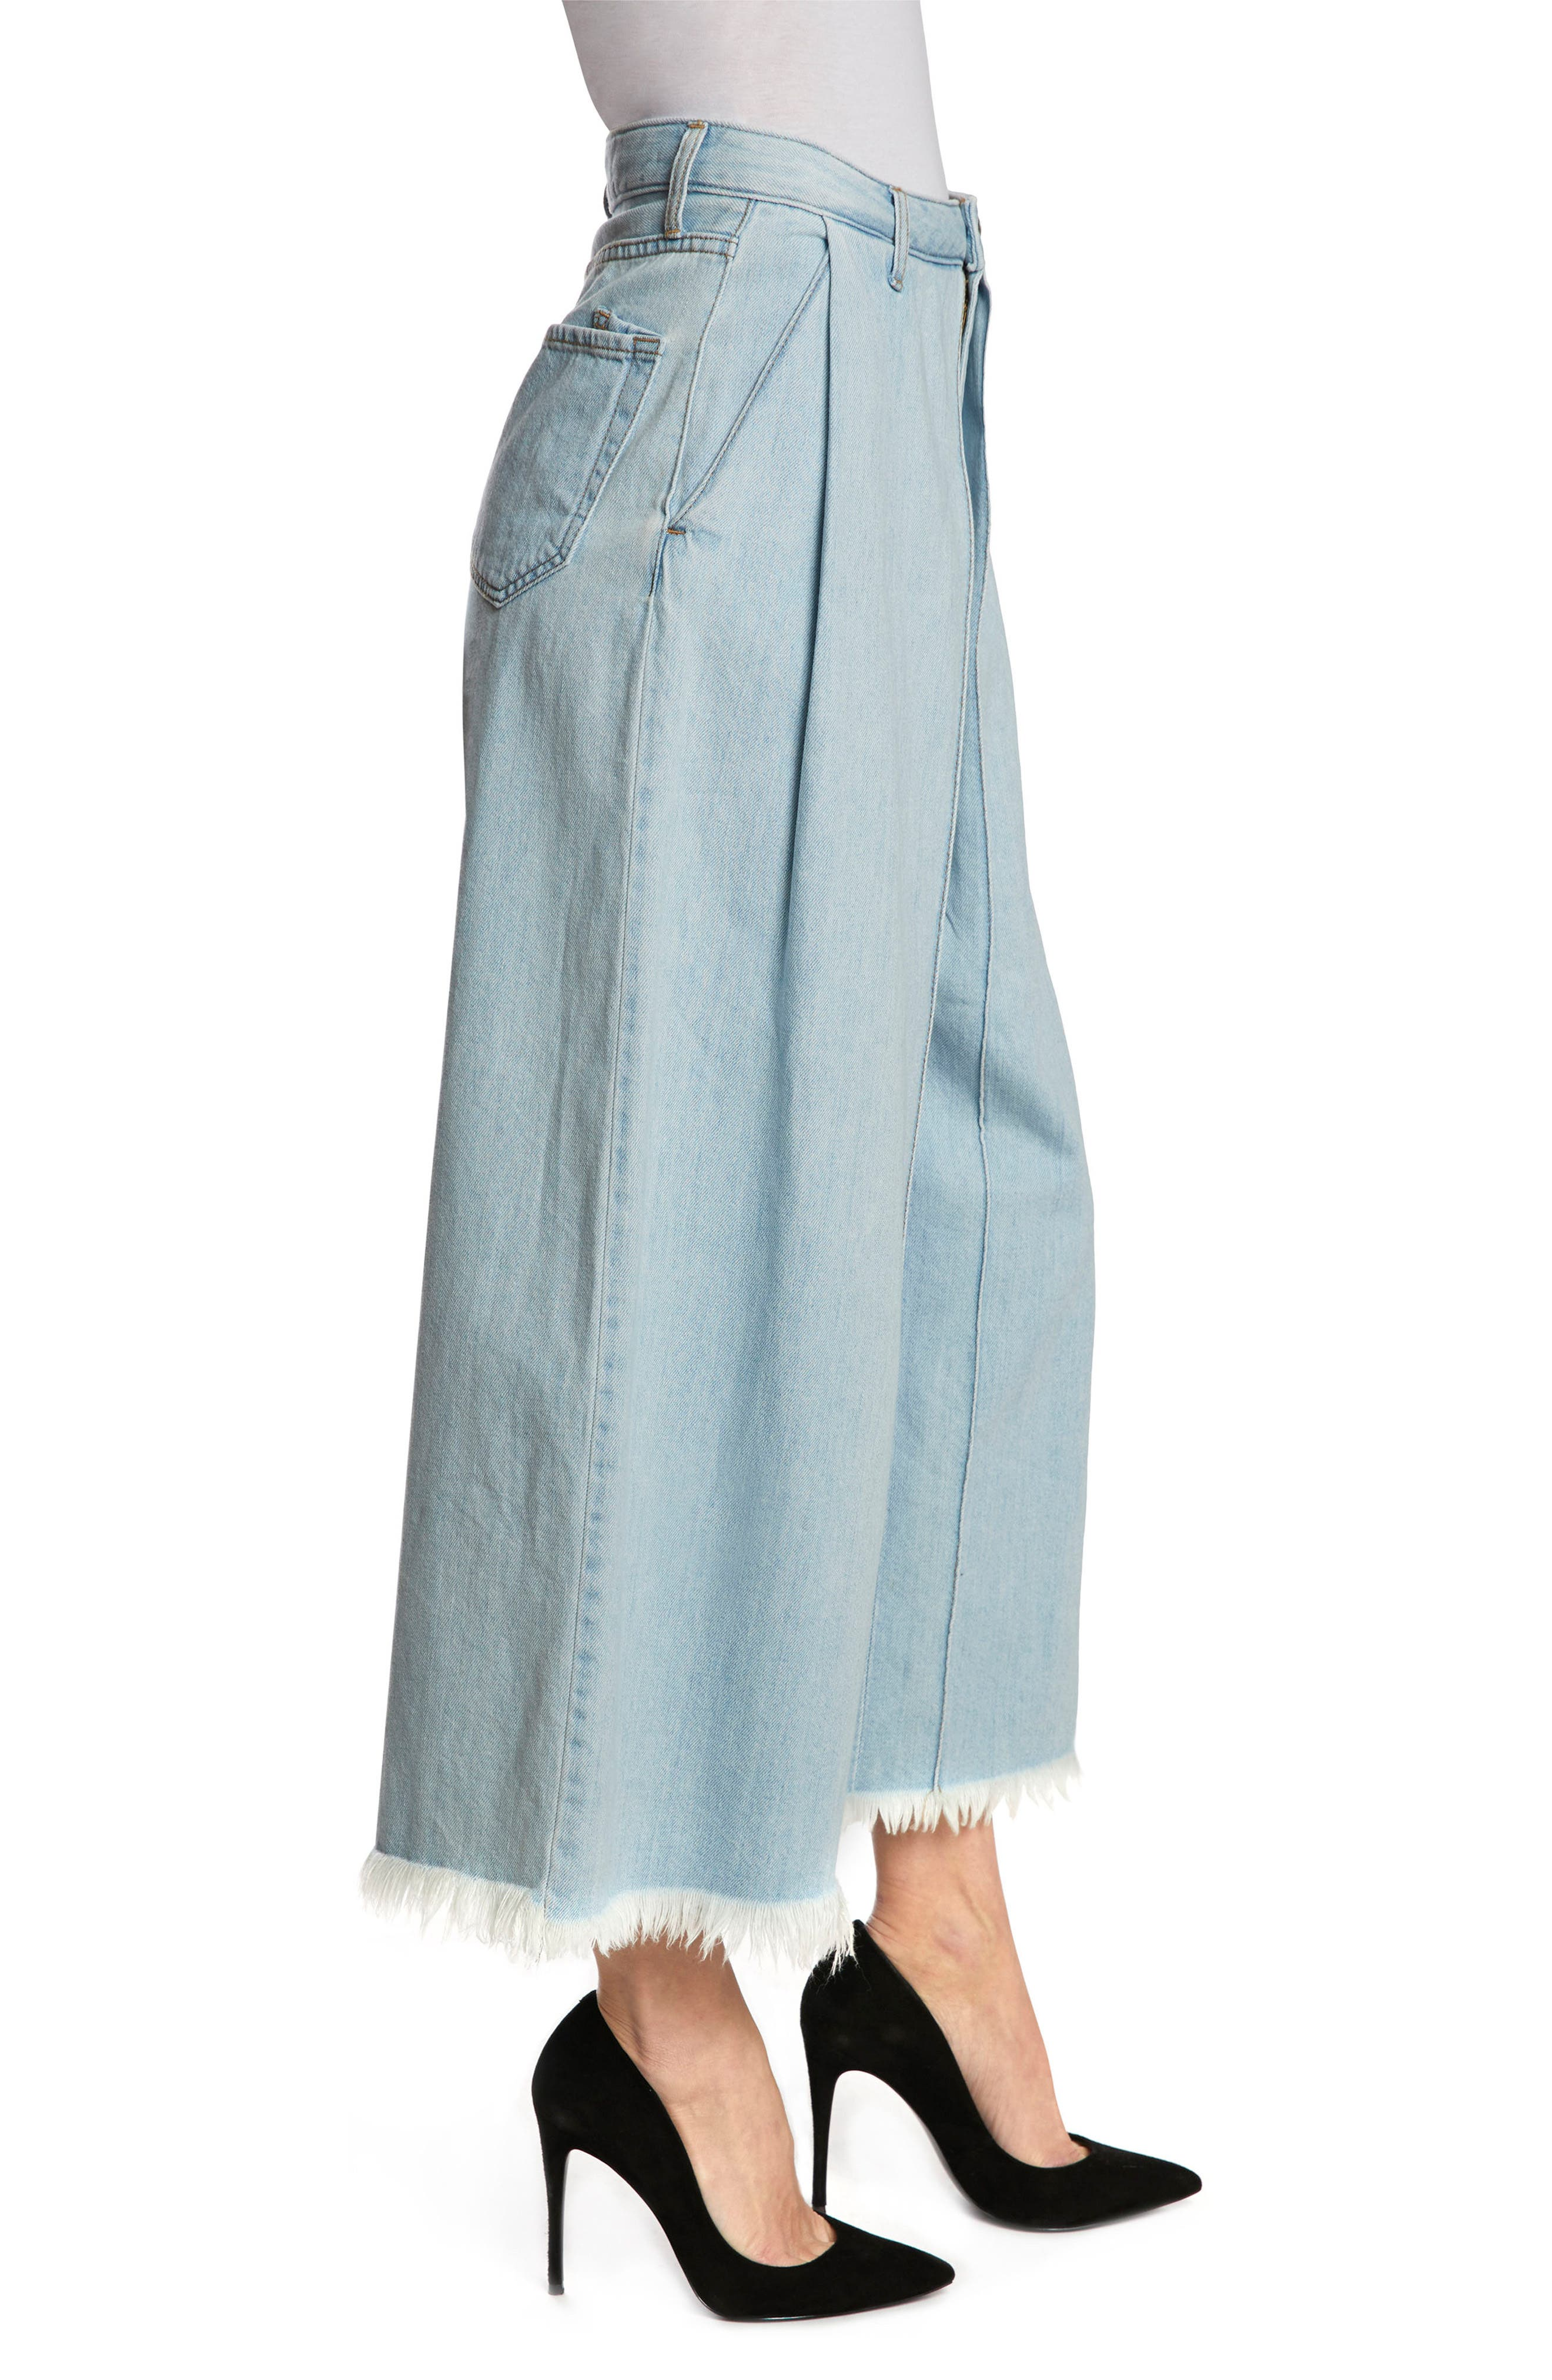 Javelin High Waist Crop Wide Leg Jeans,                             Alternate thumbnail 3, color,                             Light Wash